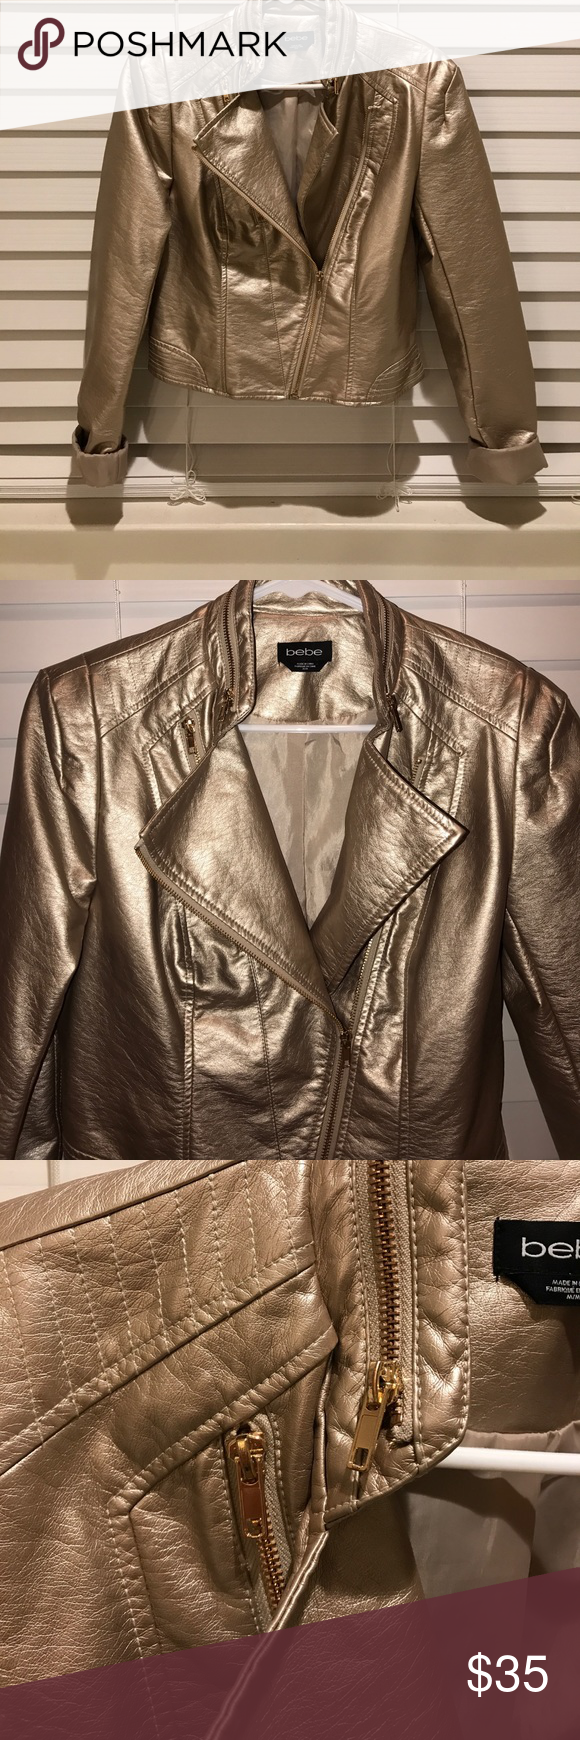 BeBe soft gold leather jacket Matte gold soft leather-look Moto jacket with gold zipper details. Lined. Never worn. Very flattering! bebe Jackets & Coats Blazers